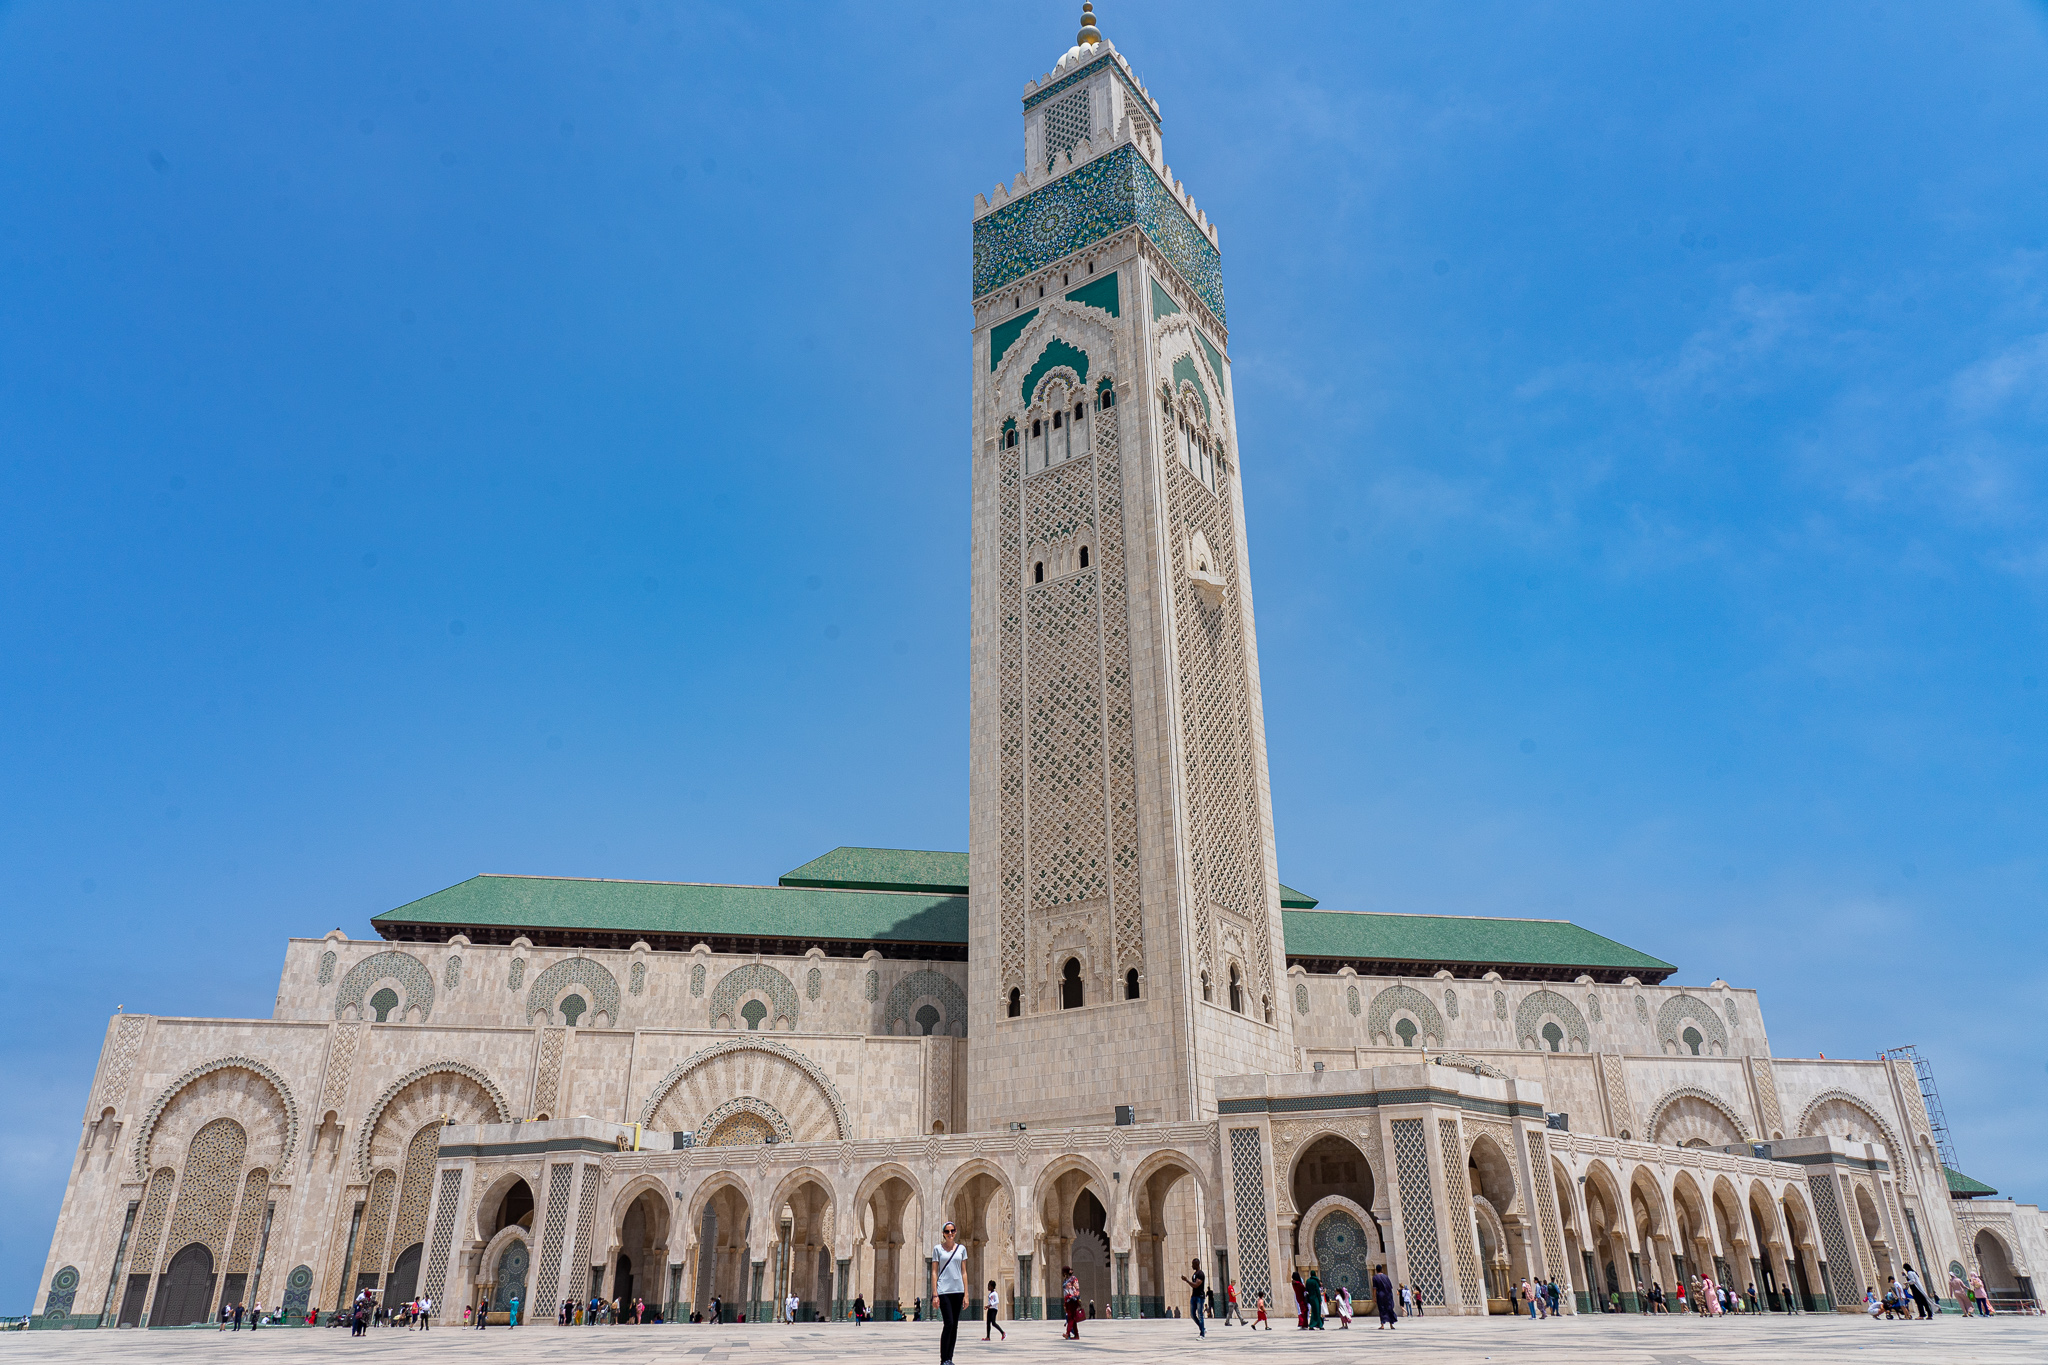 From Casablanca to Chefchaouen: A Journey Through the Mosques, Medinas, and Mountains of Morocco